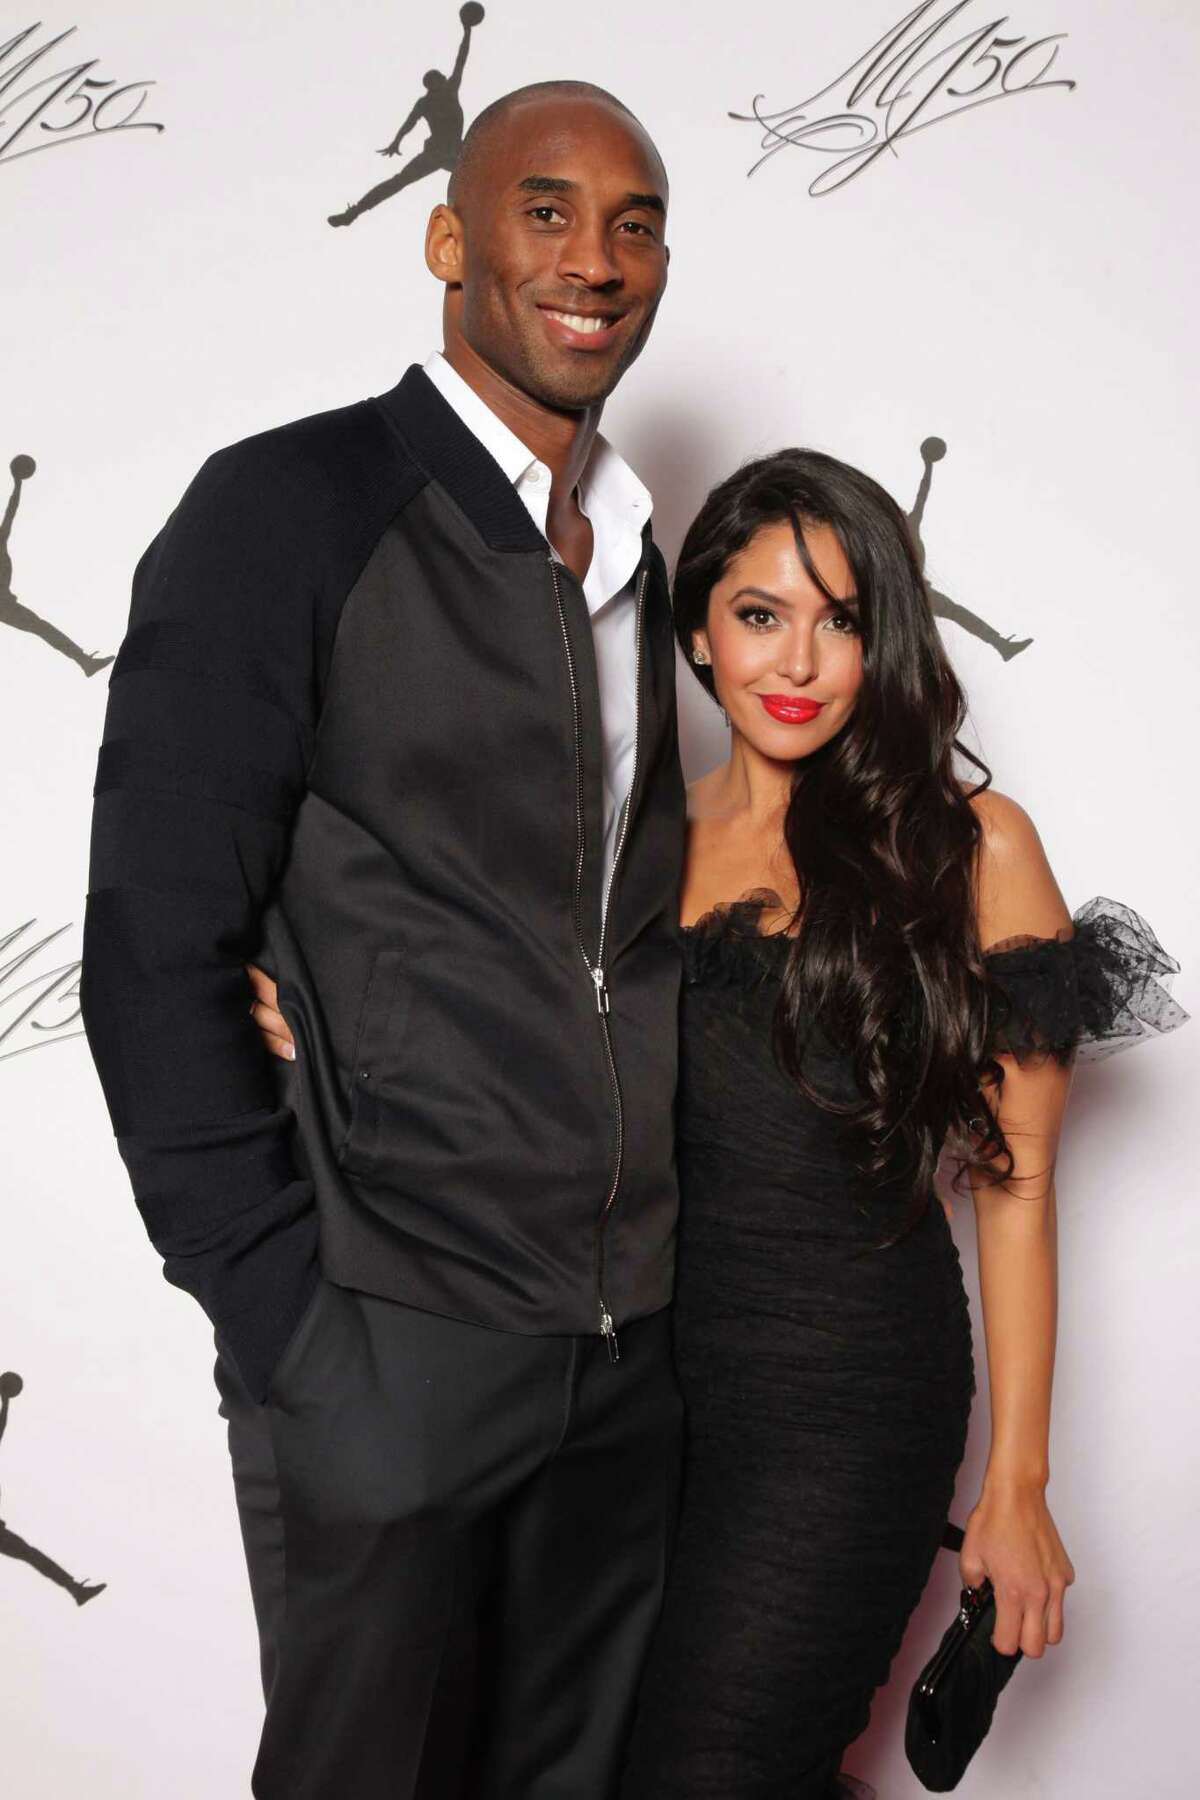 IMAGE DISTRIBUTED FOR JORDAN BRAND - Kobe and Vanessa Bryant are seen at the Jordan Brand party celebrating Michael JordanAƒa€šA'a€™s birthday on Friday, February 15, 2013 in Houston, TX. The Jordan Brand launched its Air Jordan XX8 in Houston on the same day. (Photo by Omar Vega/Invision for Jordan Brand/AP Images)